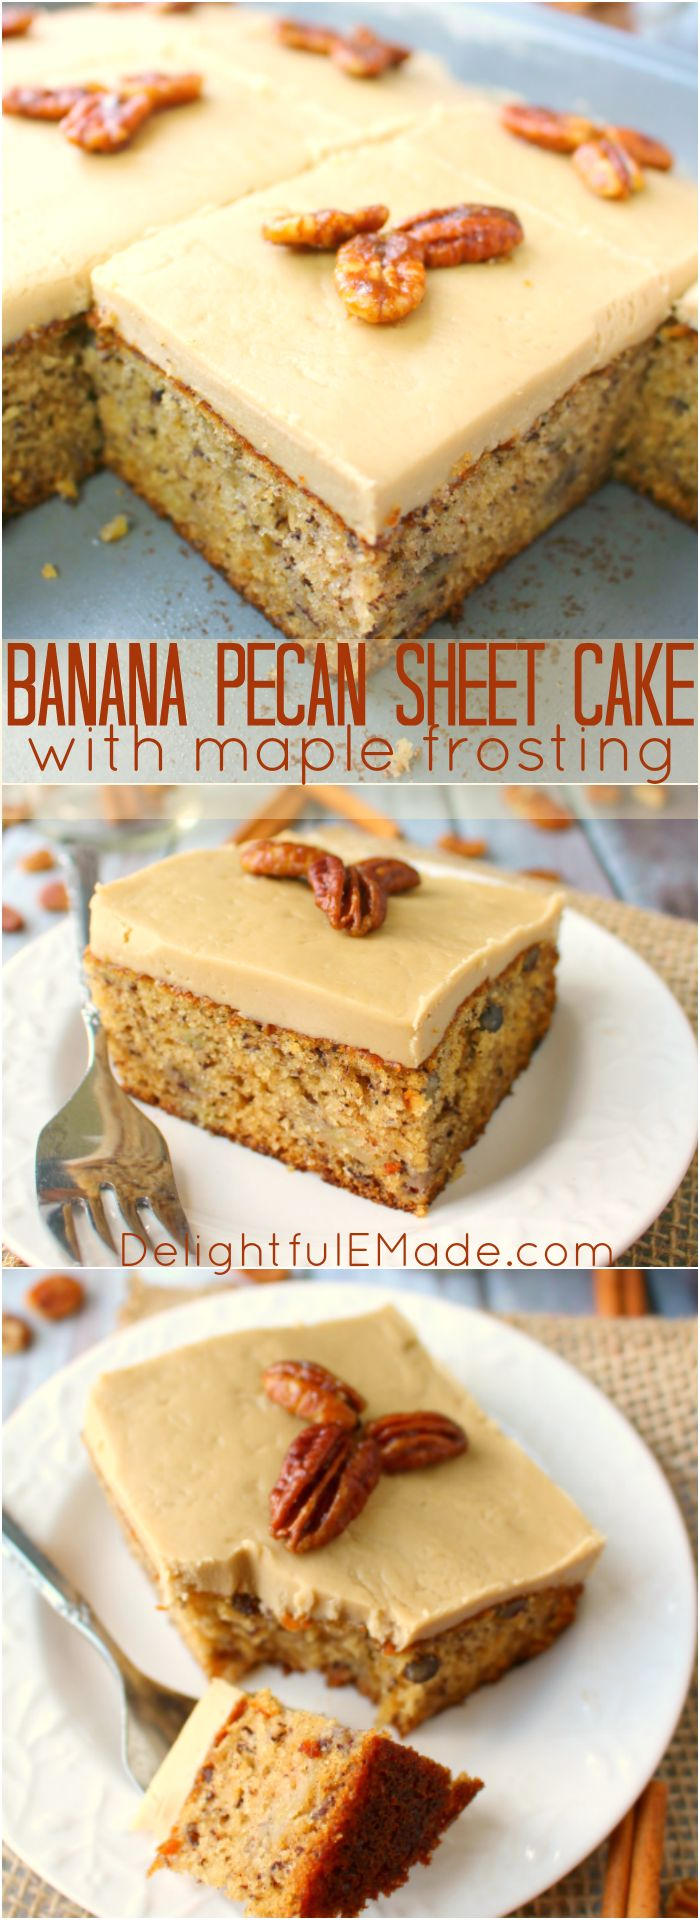 A classic banana cake brought to a whole new level! Moist, sweet cake baked with pecans and topped with a delicious maple frosting, and brown sugar glazed pecans, this cake is perfect for any and every occasion! #BLU16 #SweetandSouthern @DixieCrystals